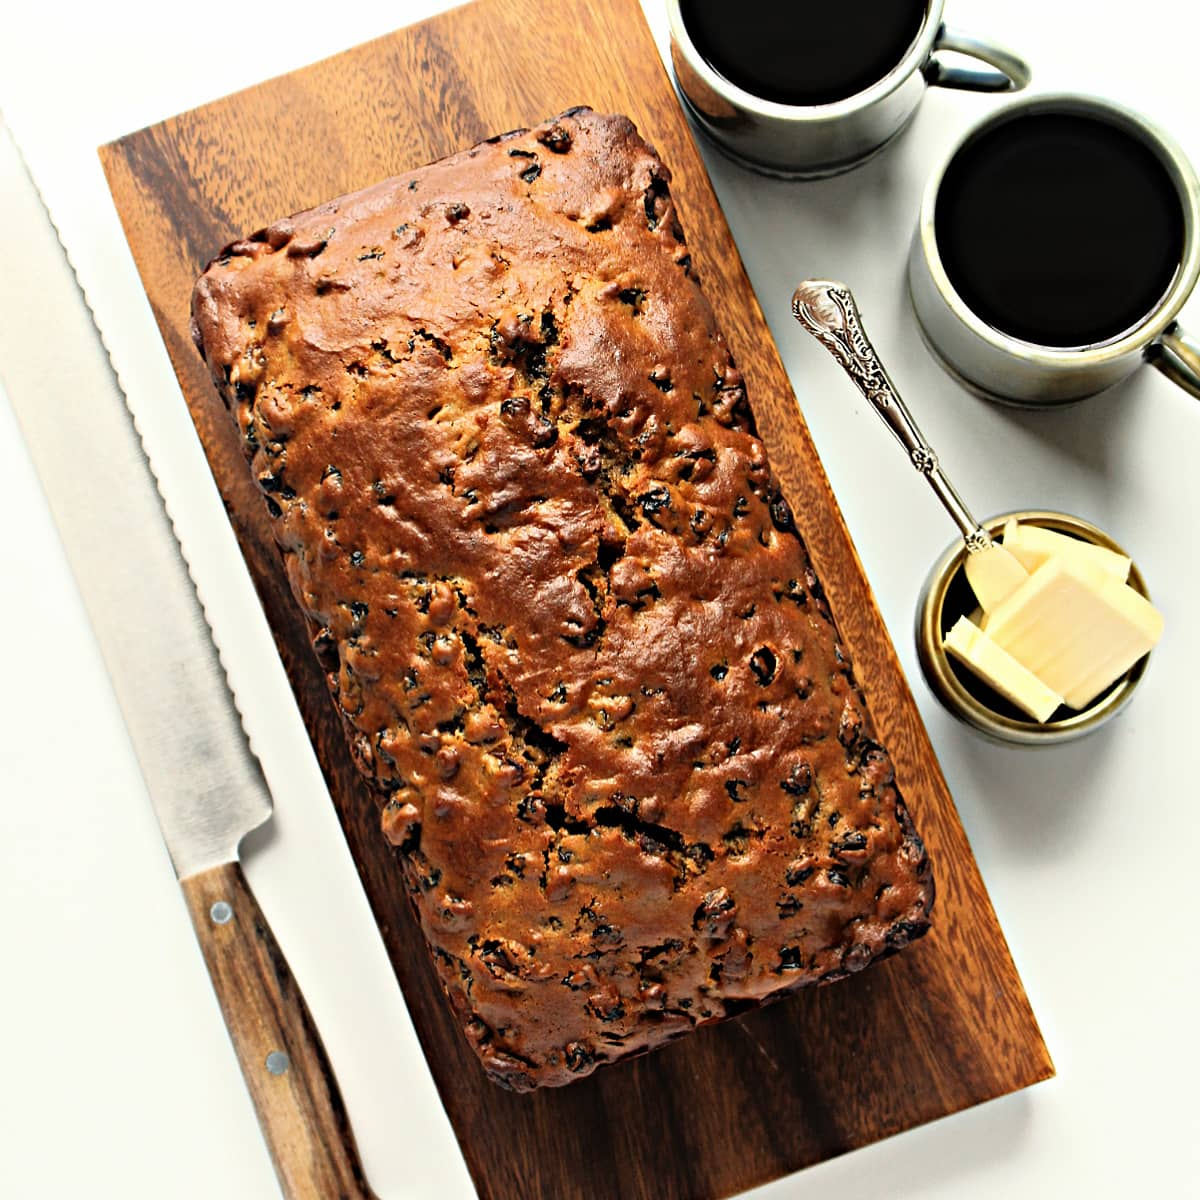 Brown loaf of Tea Brack on wooden cutting board next to knife, butter, and coffee mugs.